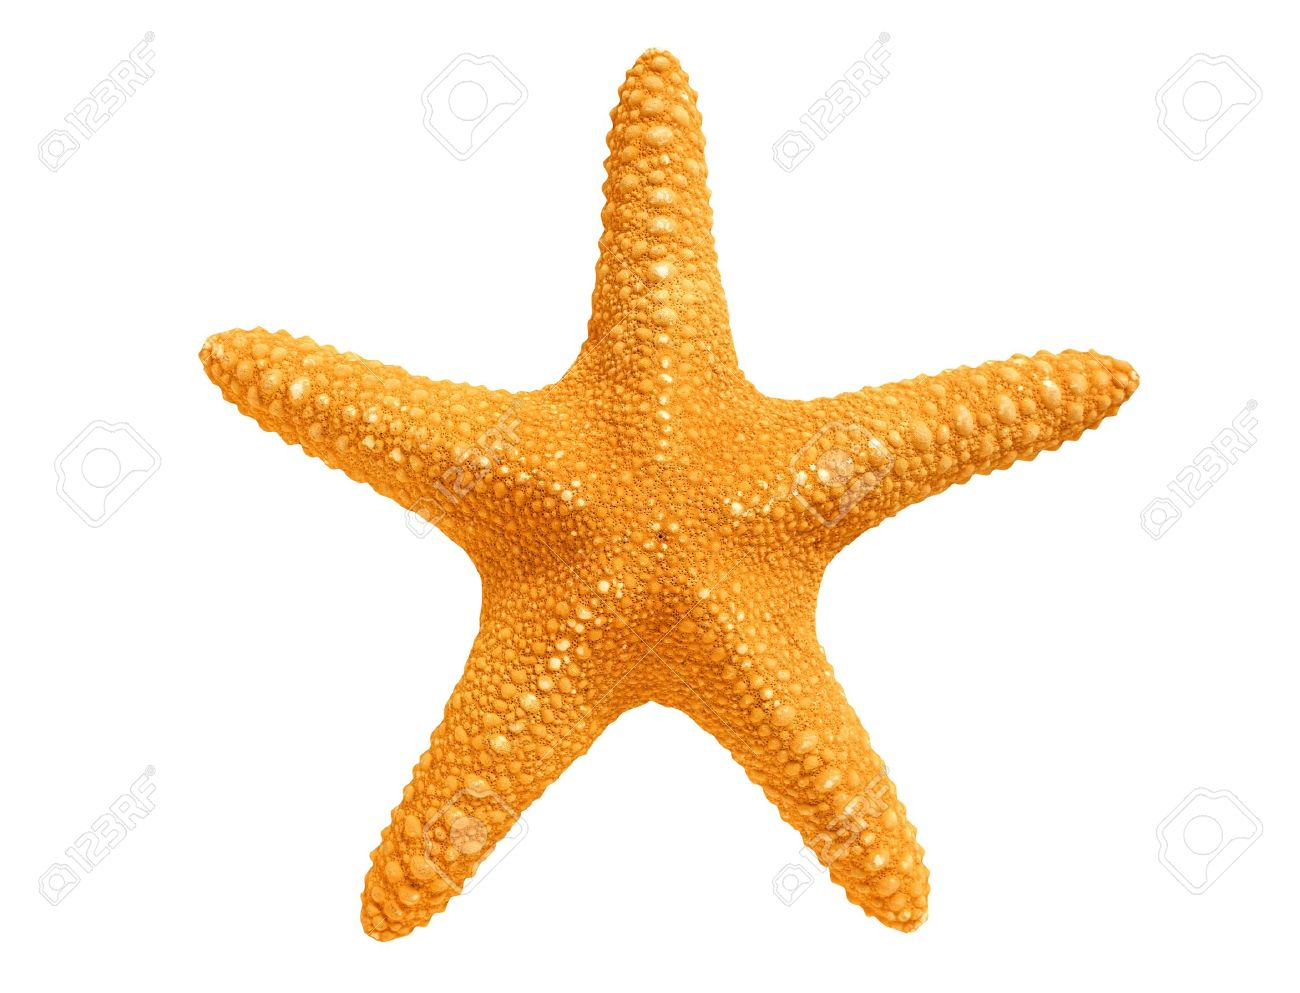 big yellow sea star isolated on white background stock photo